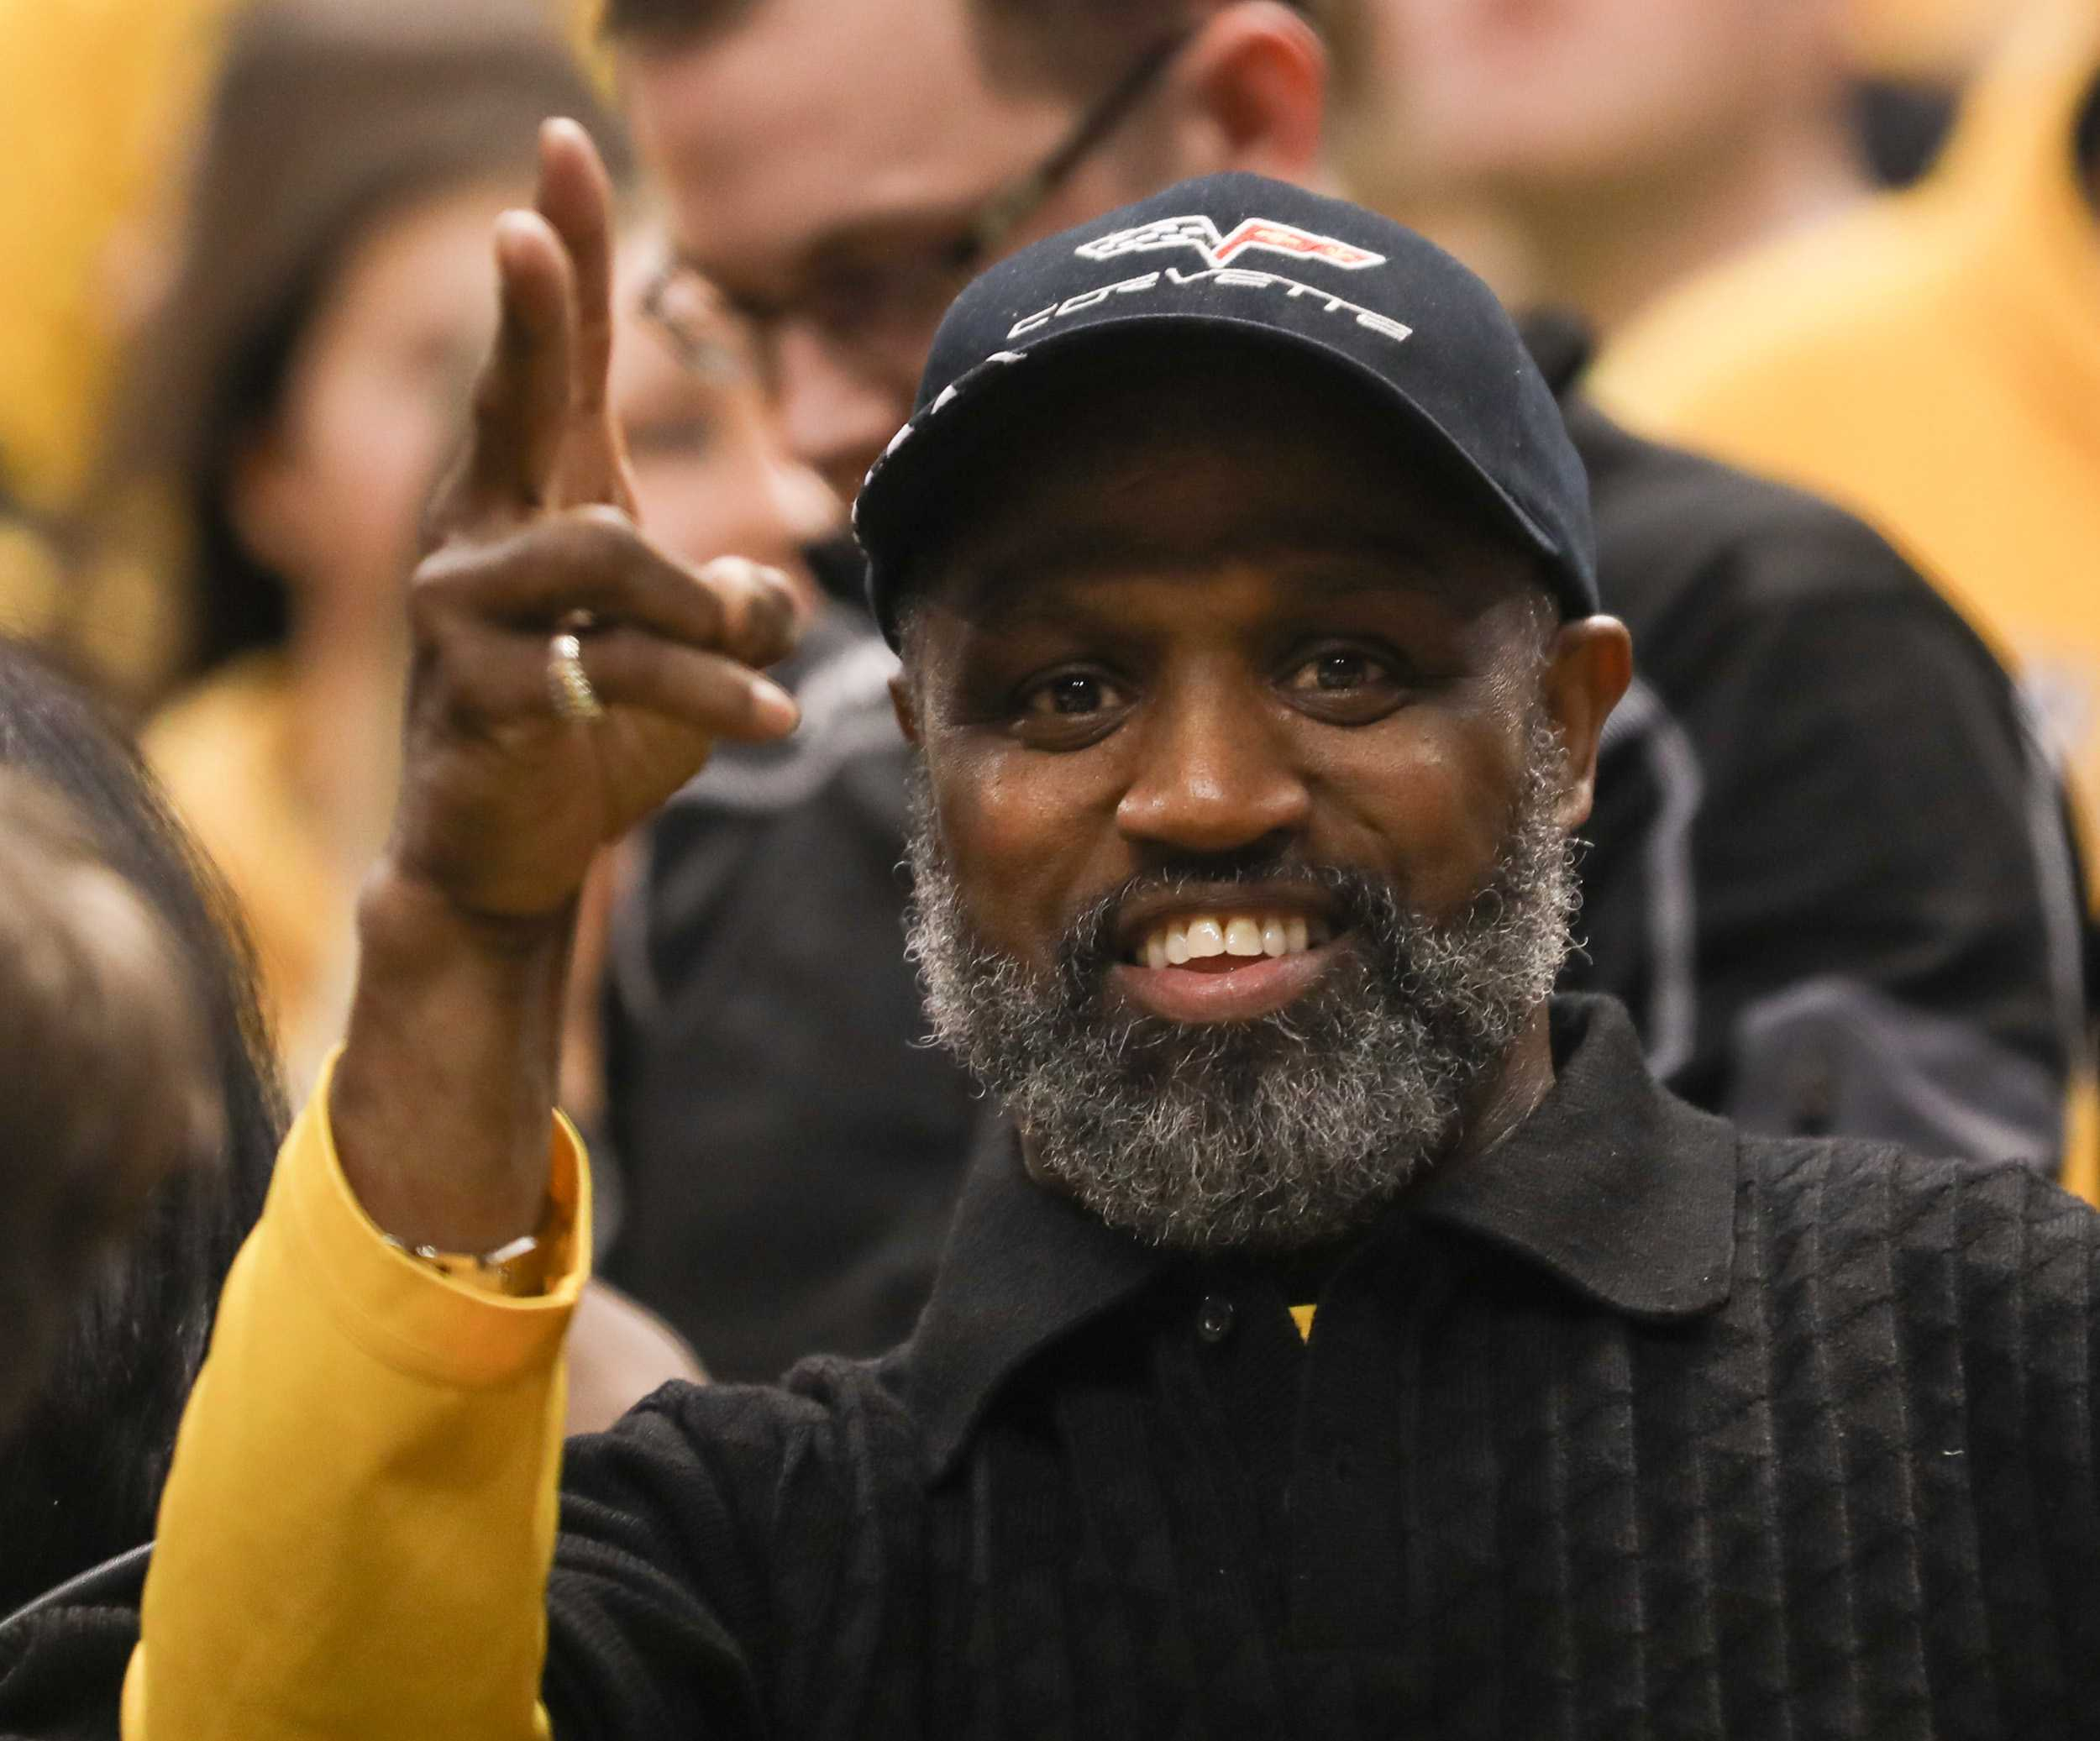 Elton Wooten cheers on the Shockers during their victory over the Dayton Flyers. (Mar. 17, 2017)